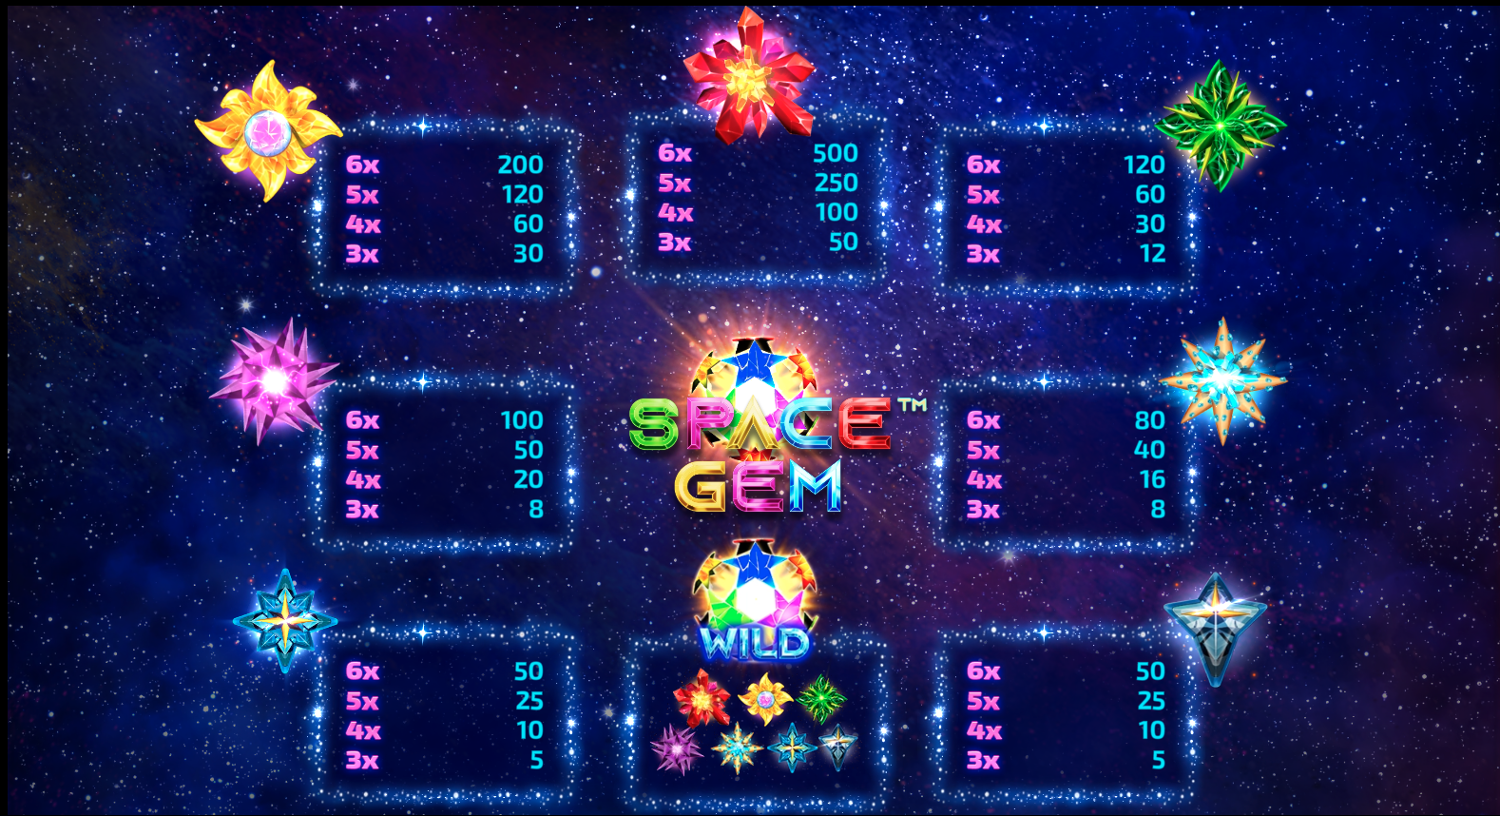 Space Gem slot paytable